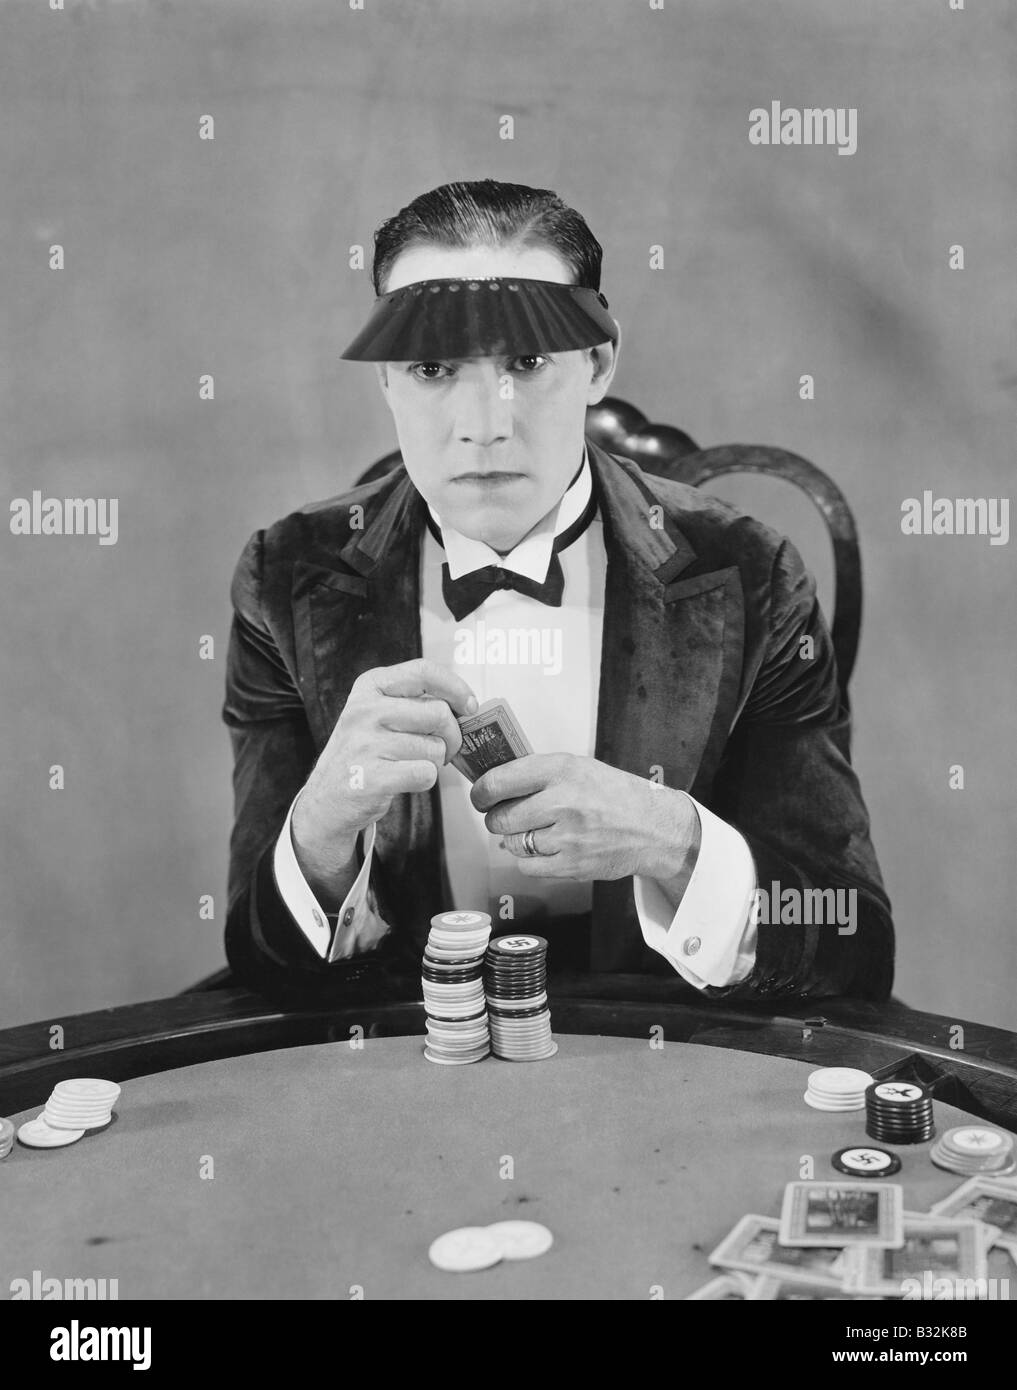 Portrait of gambler at card table - Stock Image